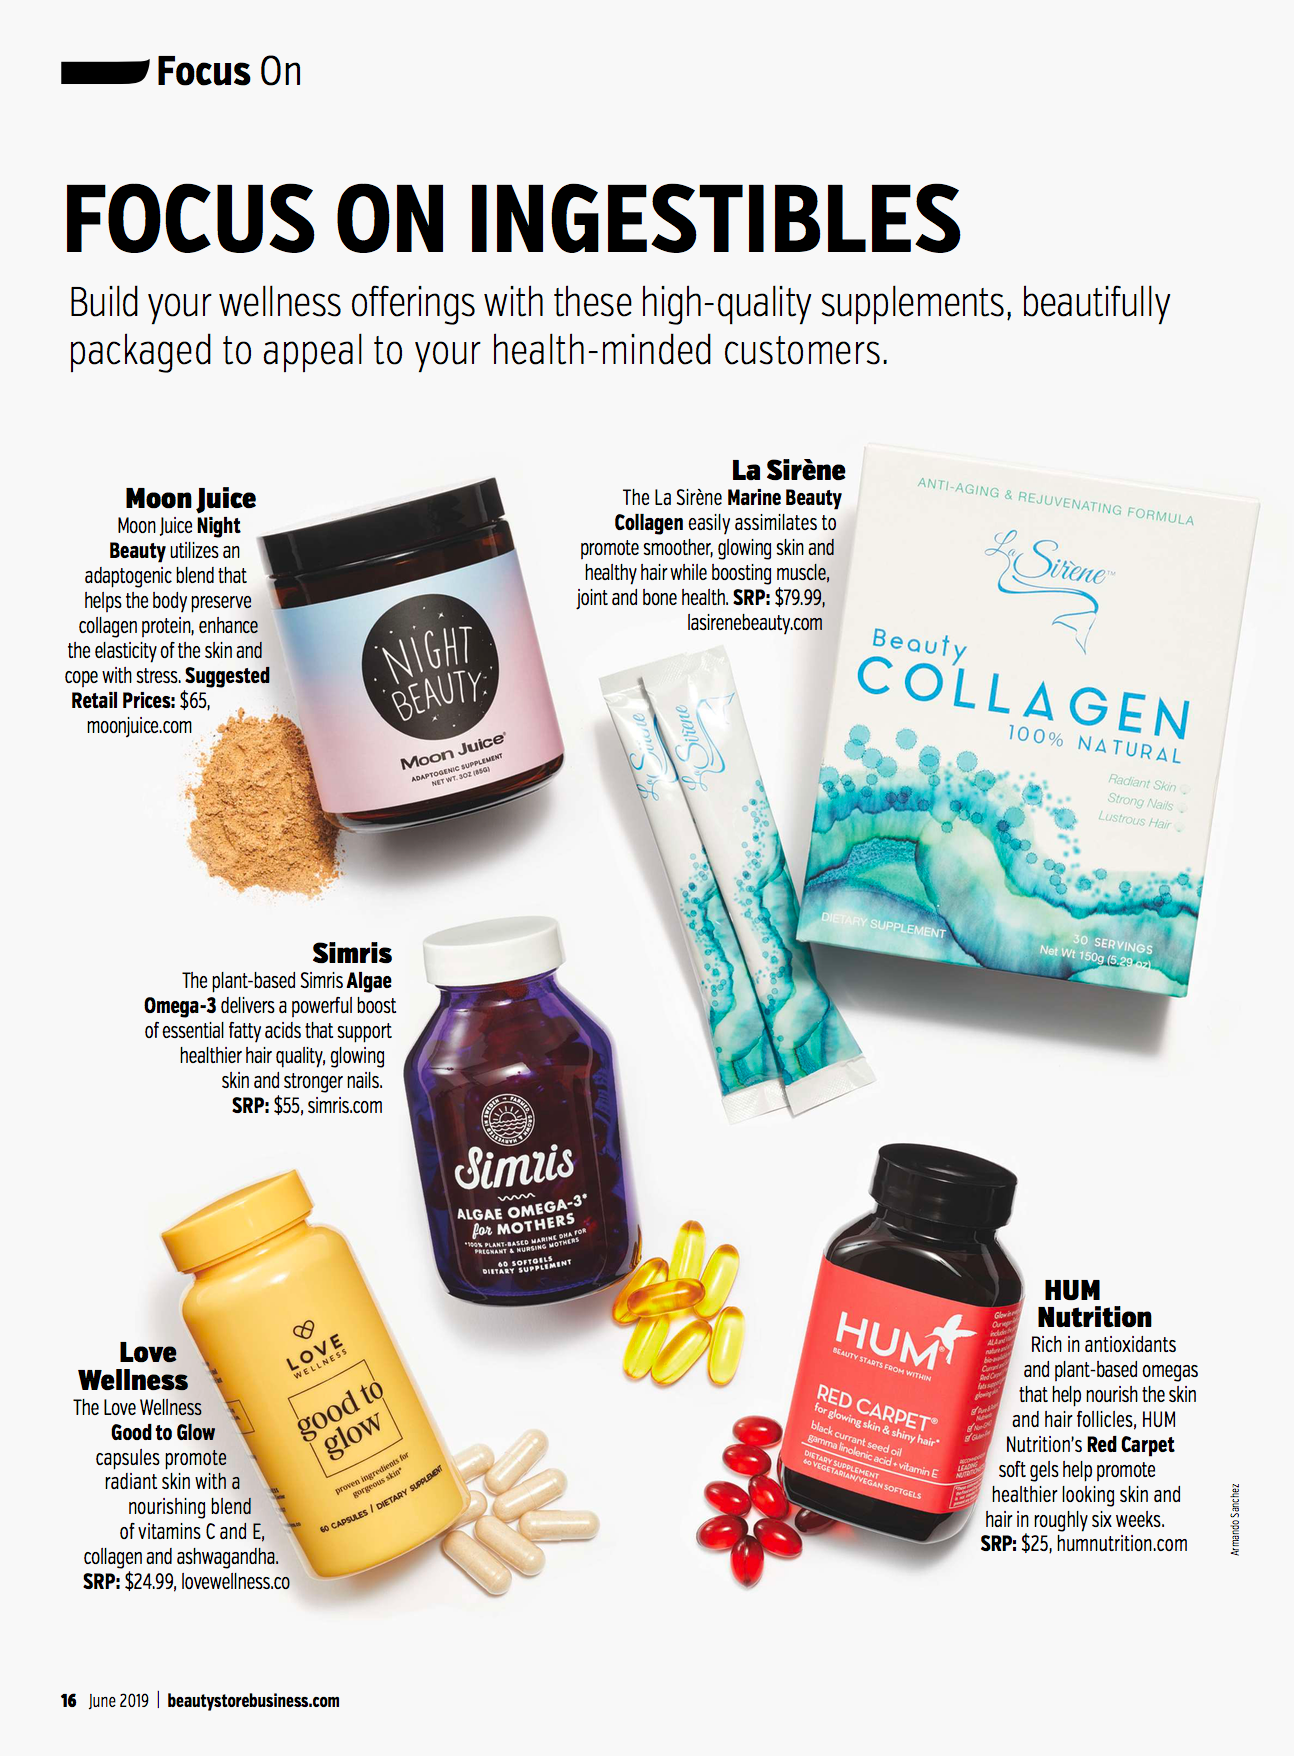 Beauty Business Store Magazine - June 2019, Focus on Ingestibles - La Sirene Marine Collagen Beauty Supplement